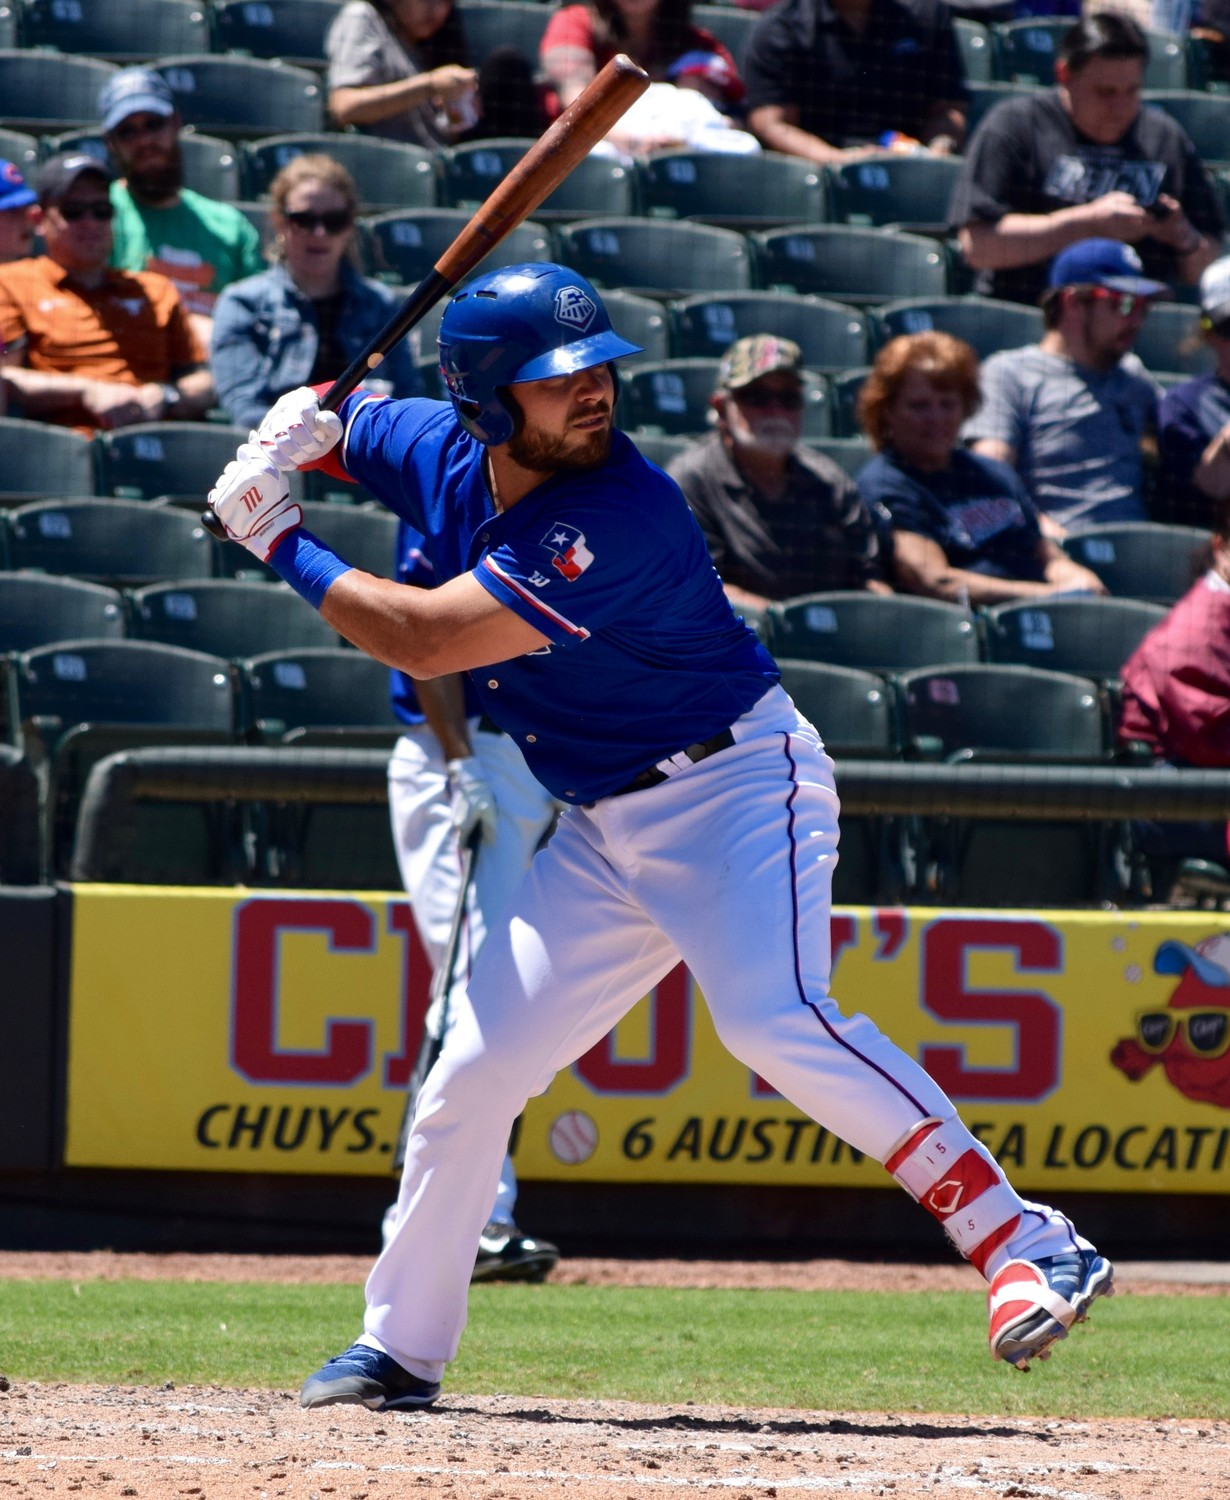 Tony Sanchez picked up his first hit with the Express, but Round Rock lost to the Colorado Springs Sky Sox 6-5 on Sunday afternoon.